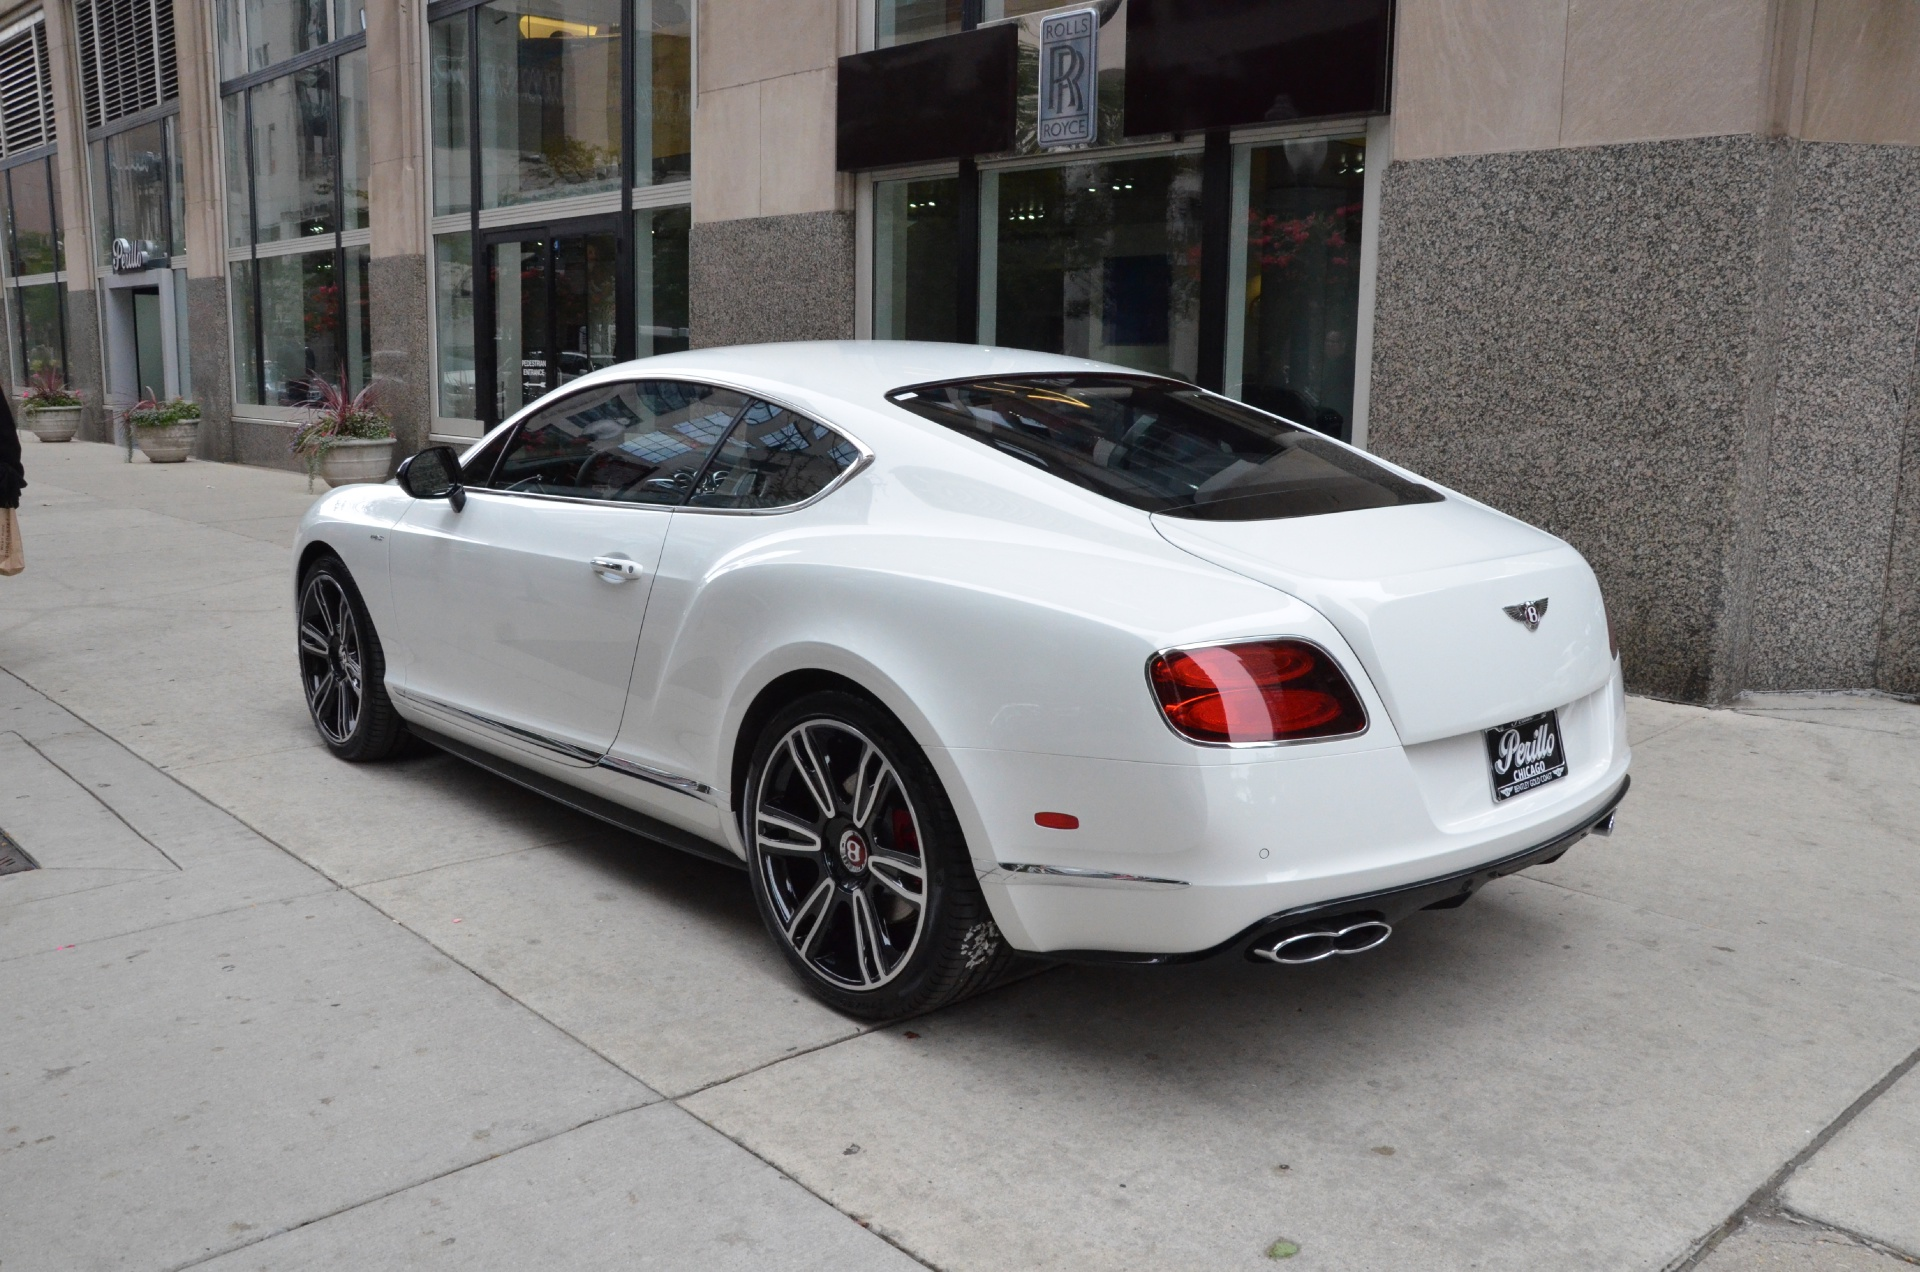 2015 bentley continental gt v8 s stock b645 s for sale near chicago il il bentley dealer. Black Bedroom Furniture Sets. Home Design Ideas